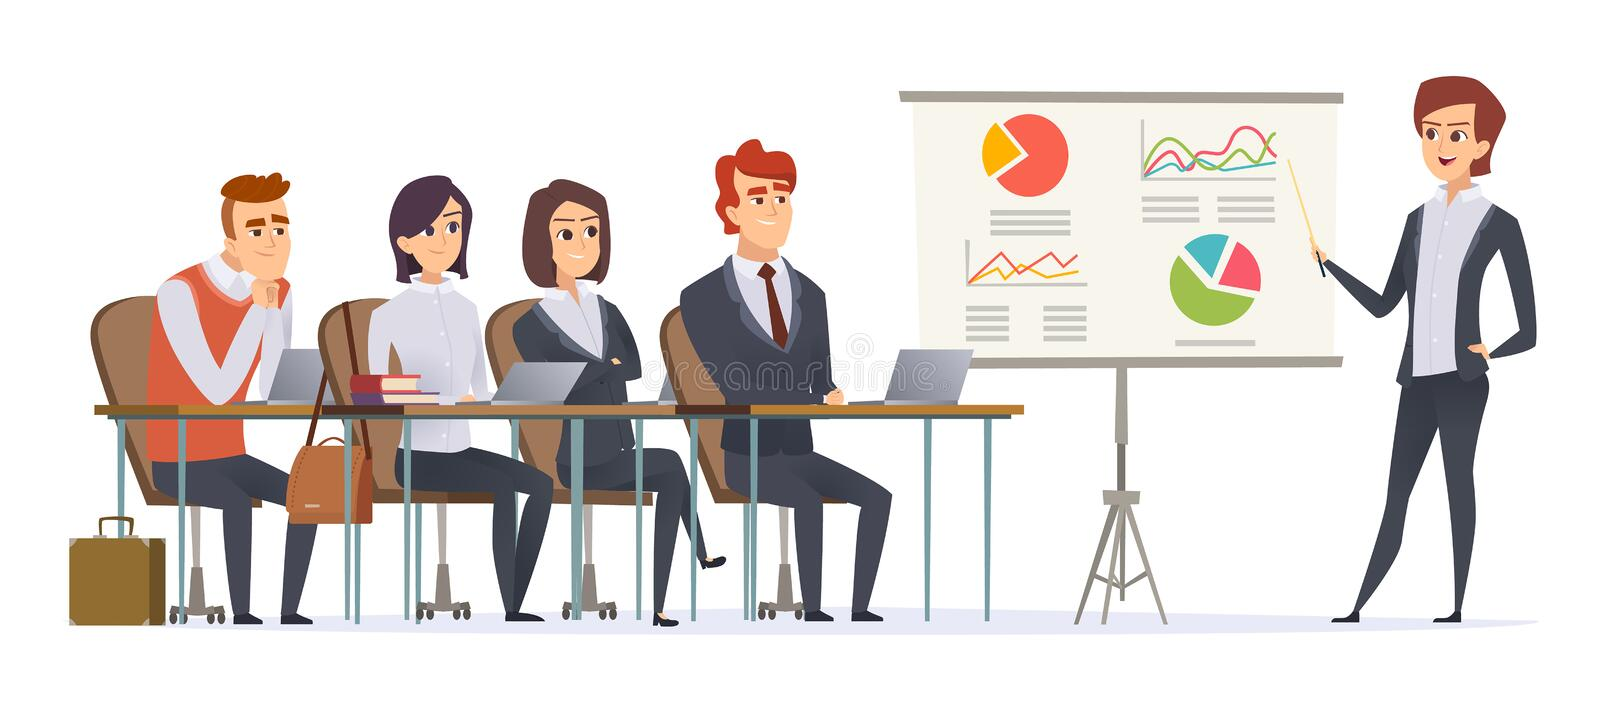 Business presentation characters. Group of managers sitting in classroom listening learning couch business seminar. Vector concept. Illustration of education stock illustration